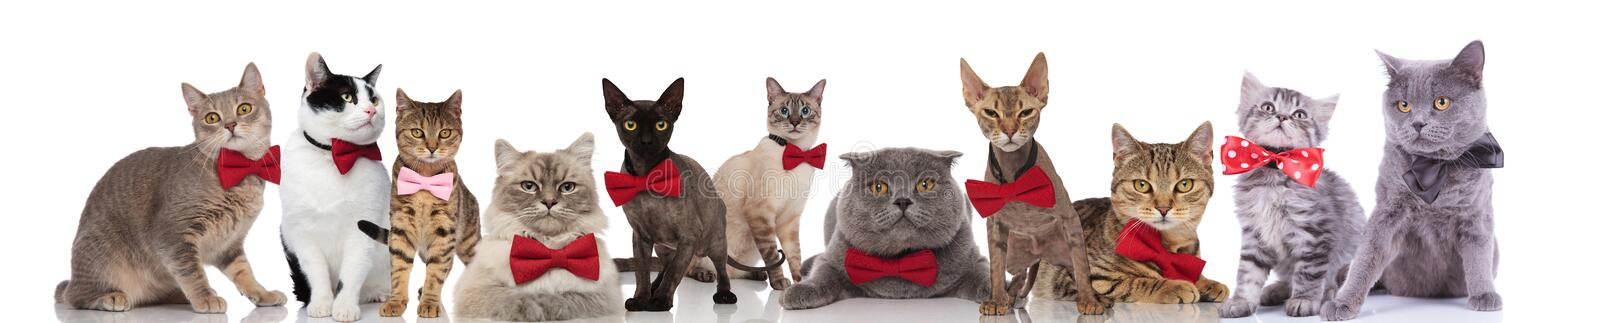 Large group of cute cats wearing colorful bowties stock photo